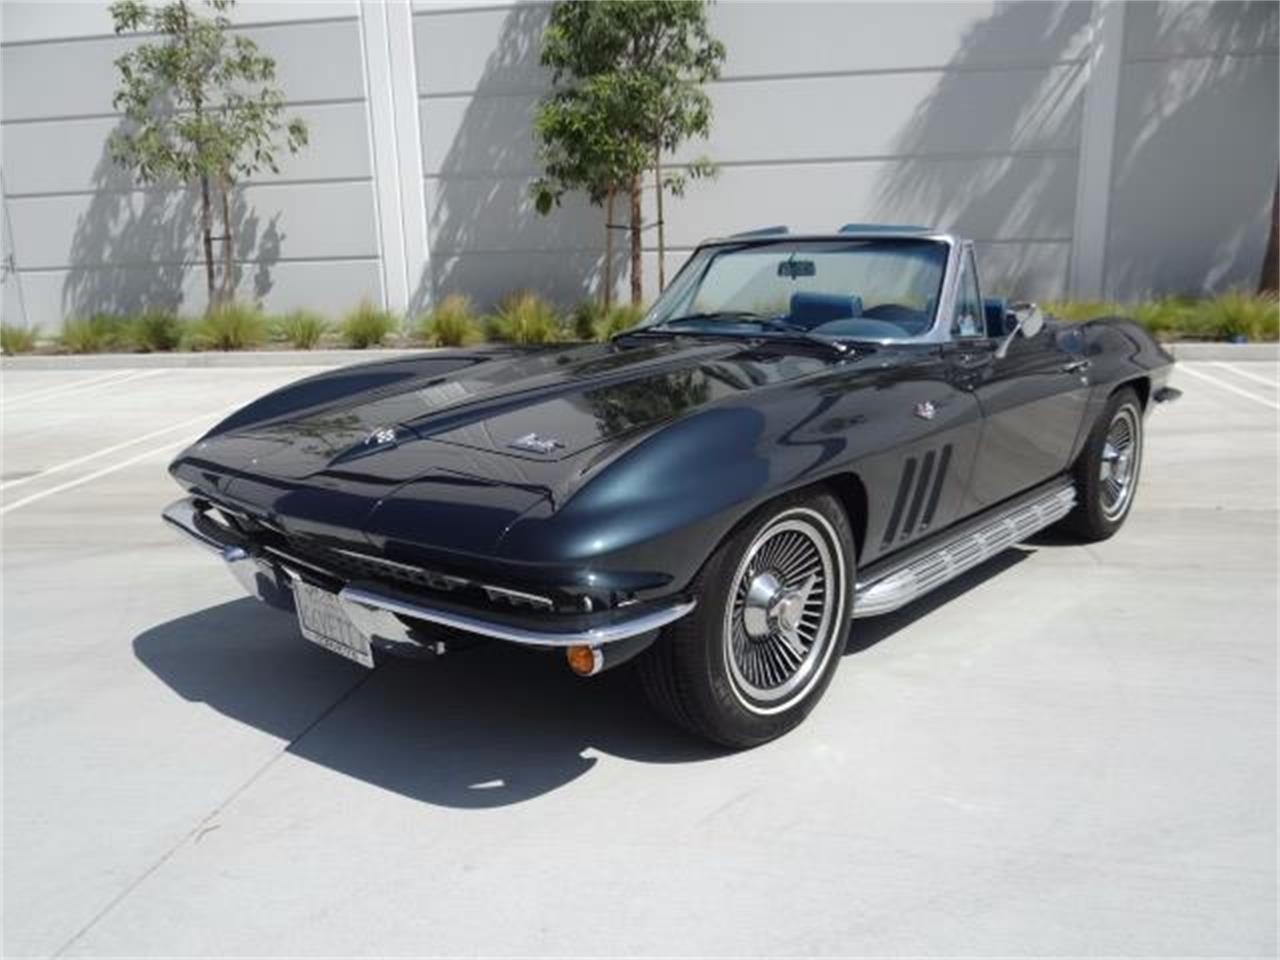 Large Picture of Classic 1966 Chevrolet Corvette located in California - $65,000.00 Offered by West Coast Corvettes - LEPG